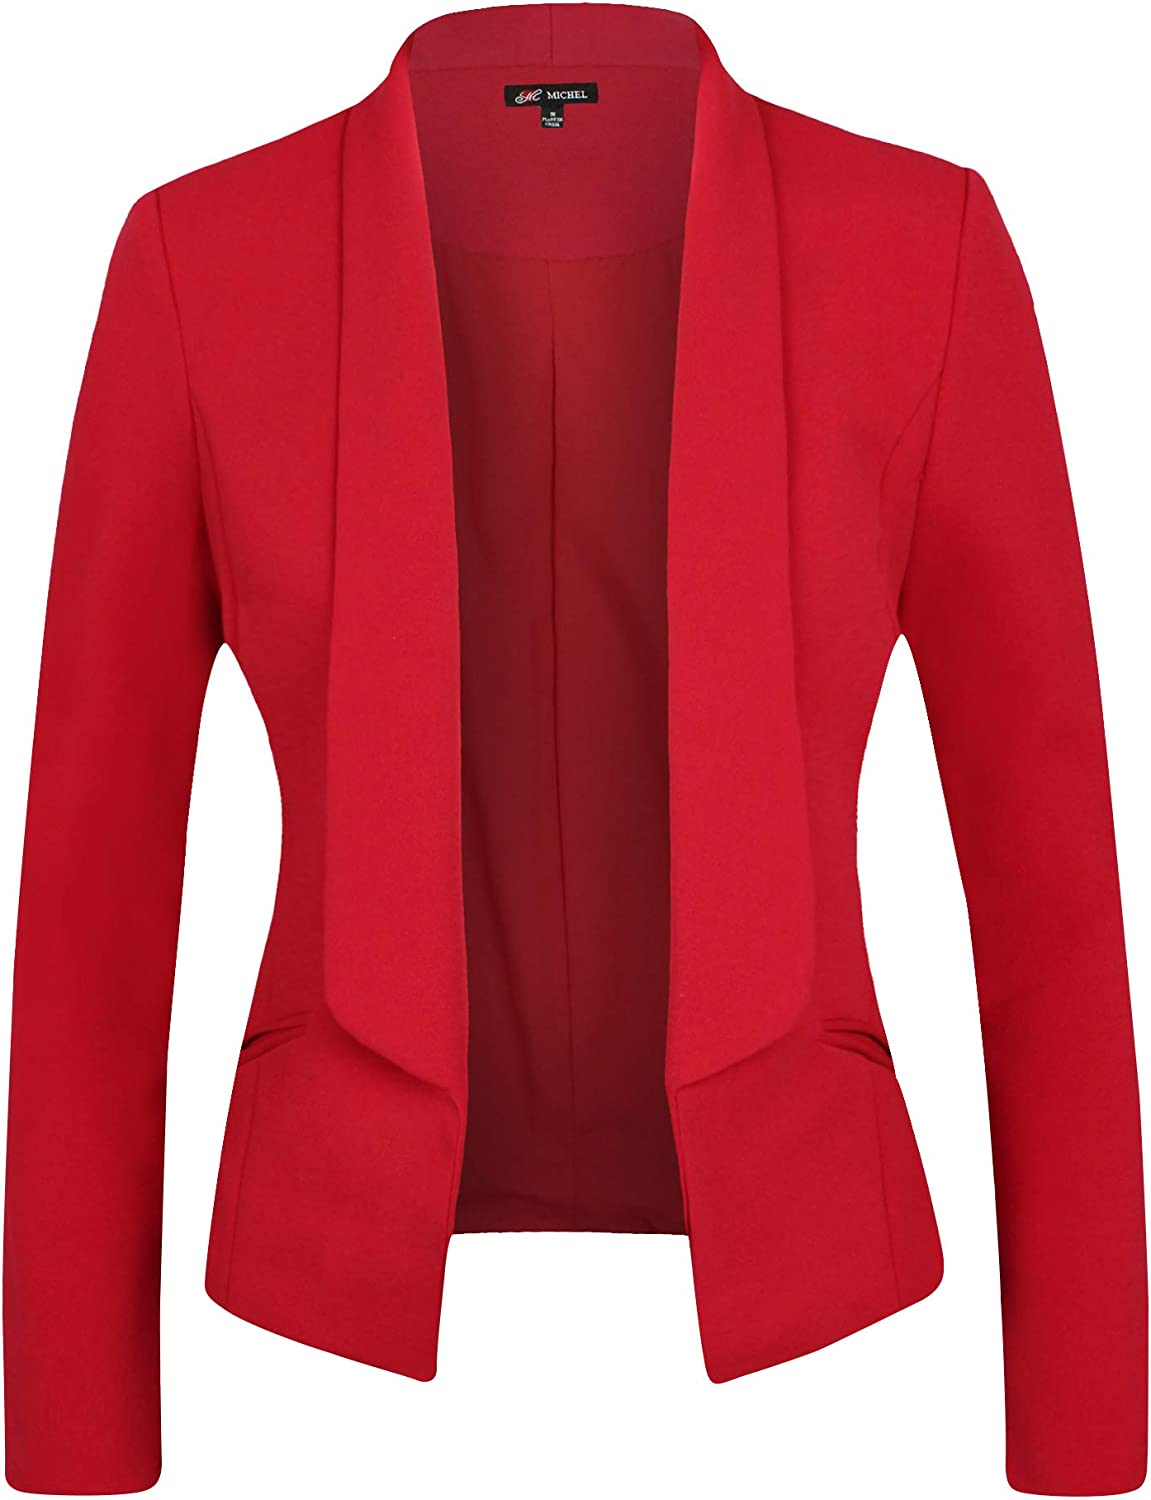 Michel Women Long Sleeve Casual Work wit Solid Blazer Color Knit Superlatite Max 72% OFF